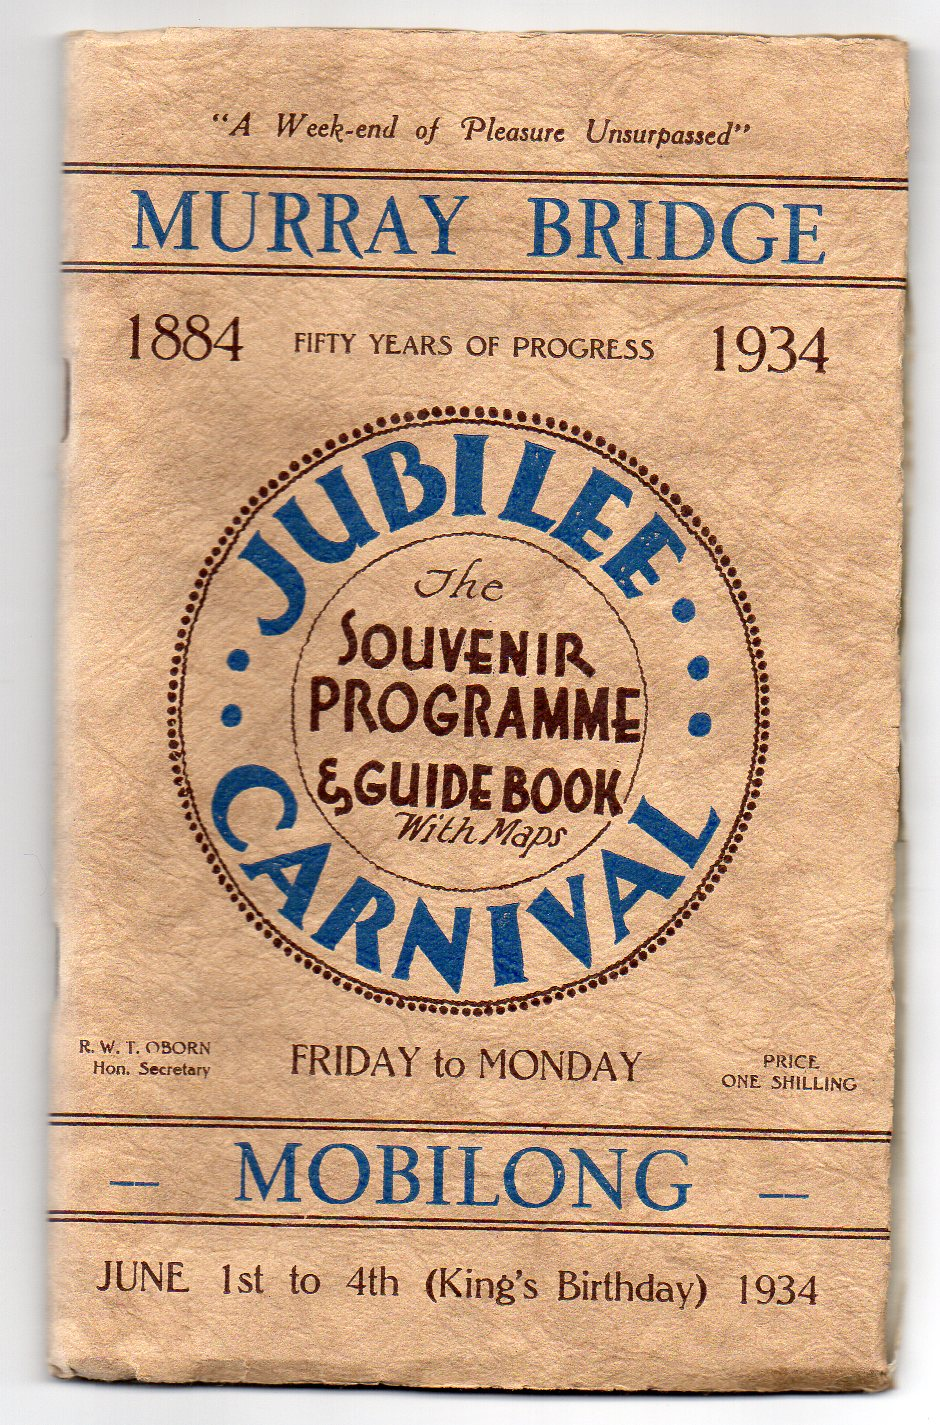 Image for Murray Bridge - Mobilong Jubilee Carnival - Souvenir Programme and Guide Book [1884-1934]